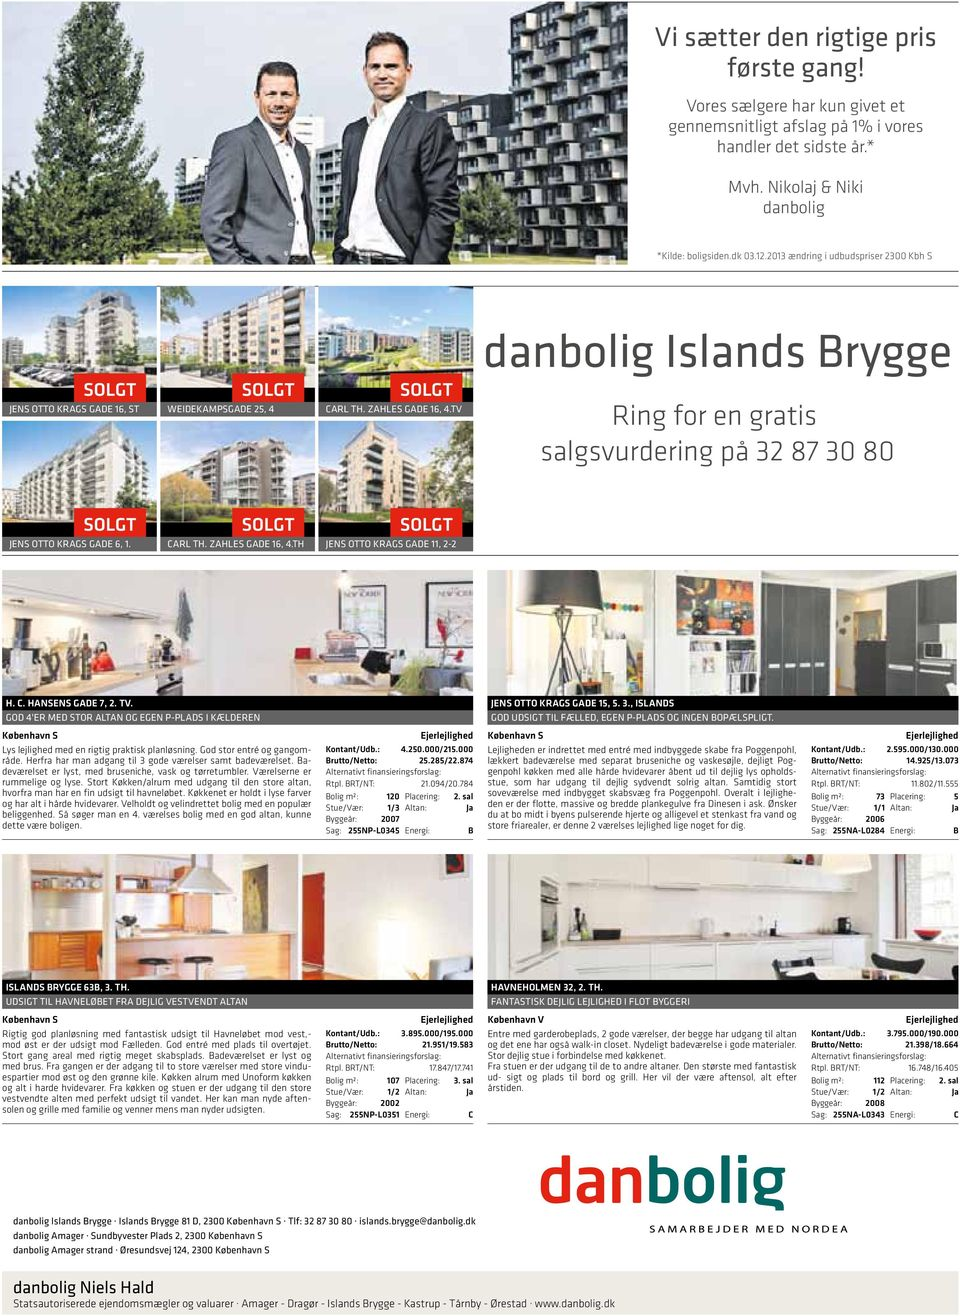 TV danbolig Islands Brygge Ring for en gratis salgsvurdering på 32 87 30 80 JENS OTTO KRAGS GADE, 1. CARL TH. ZAHLES GADE 1, 4.TH JENS OTTO KRAGS GADE 11, 2-2 H. C. HANSENS GADE 7, 2. TV.